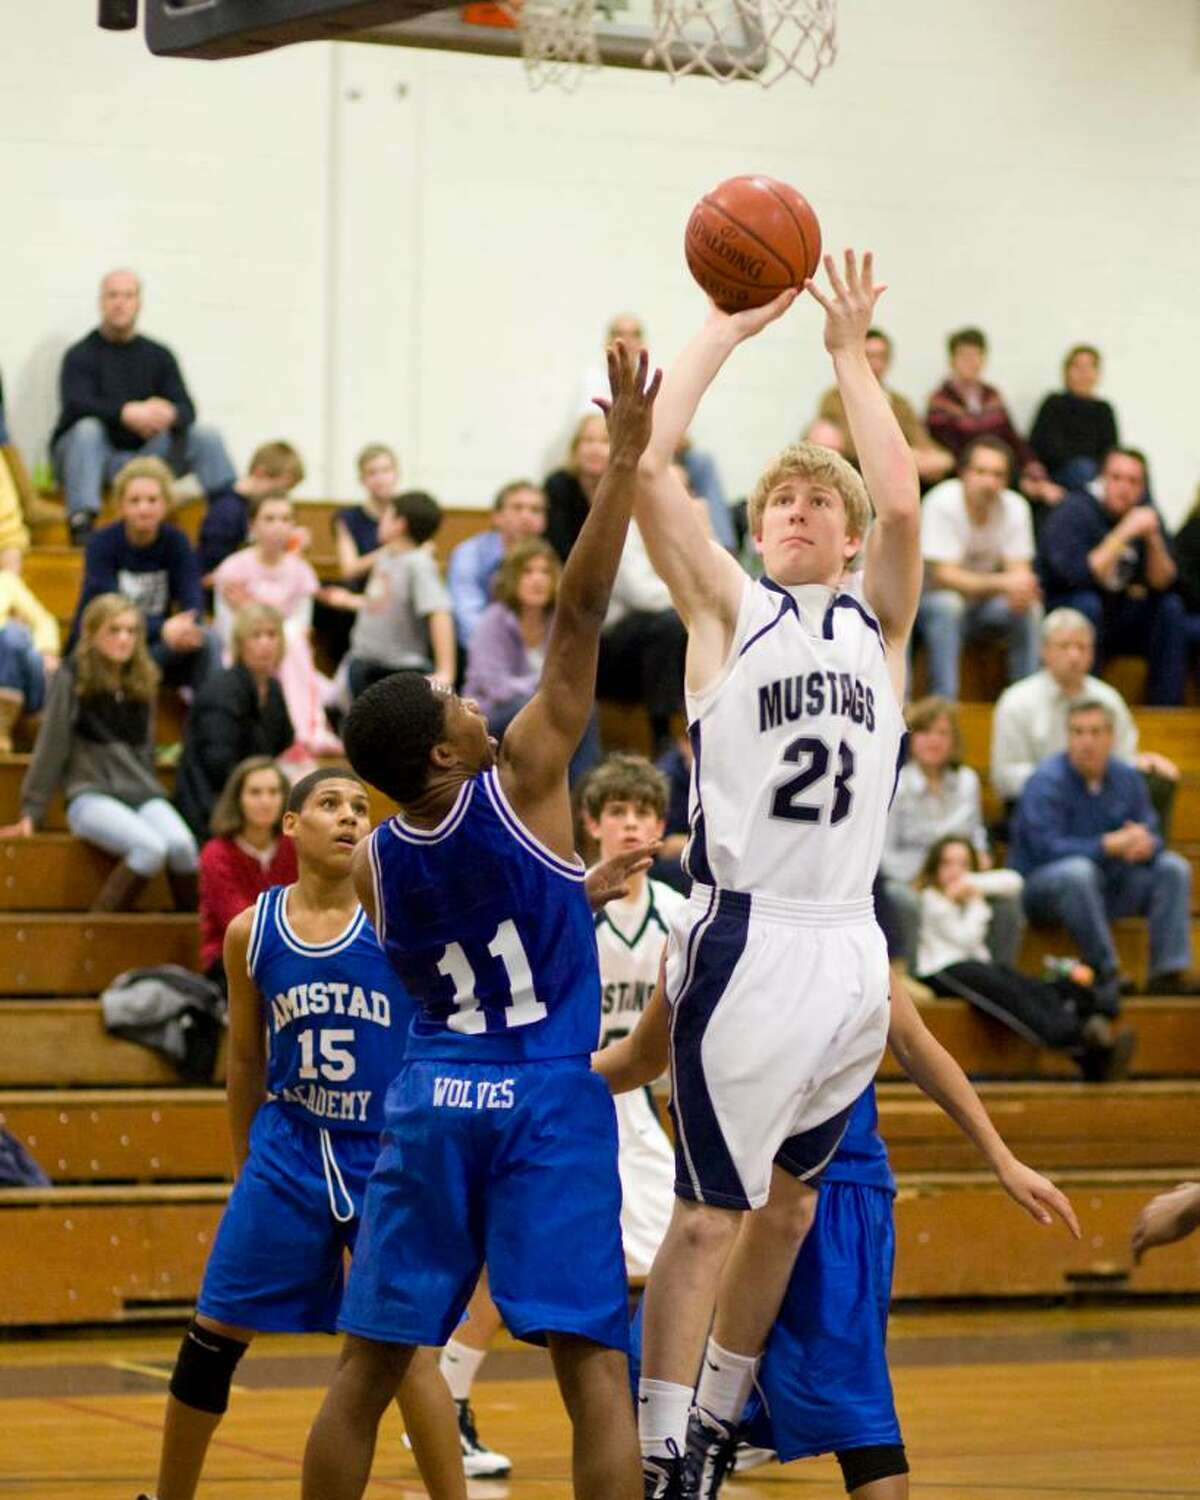 Immaculate's Grant Braun puts up a shot over Shama Talton (11) of Amistad Academy Monday night at Immaculate High.